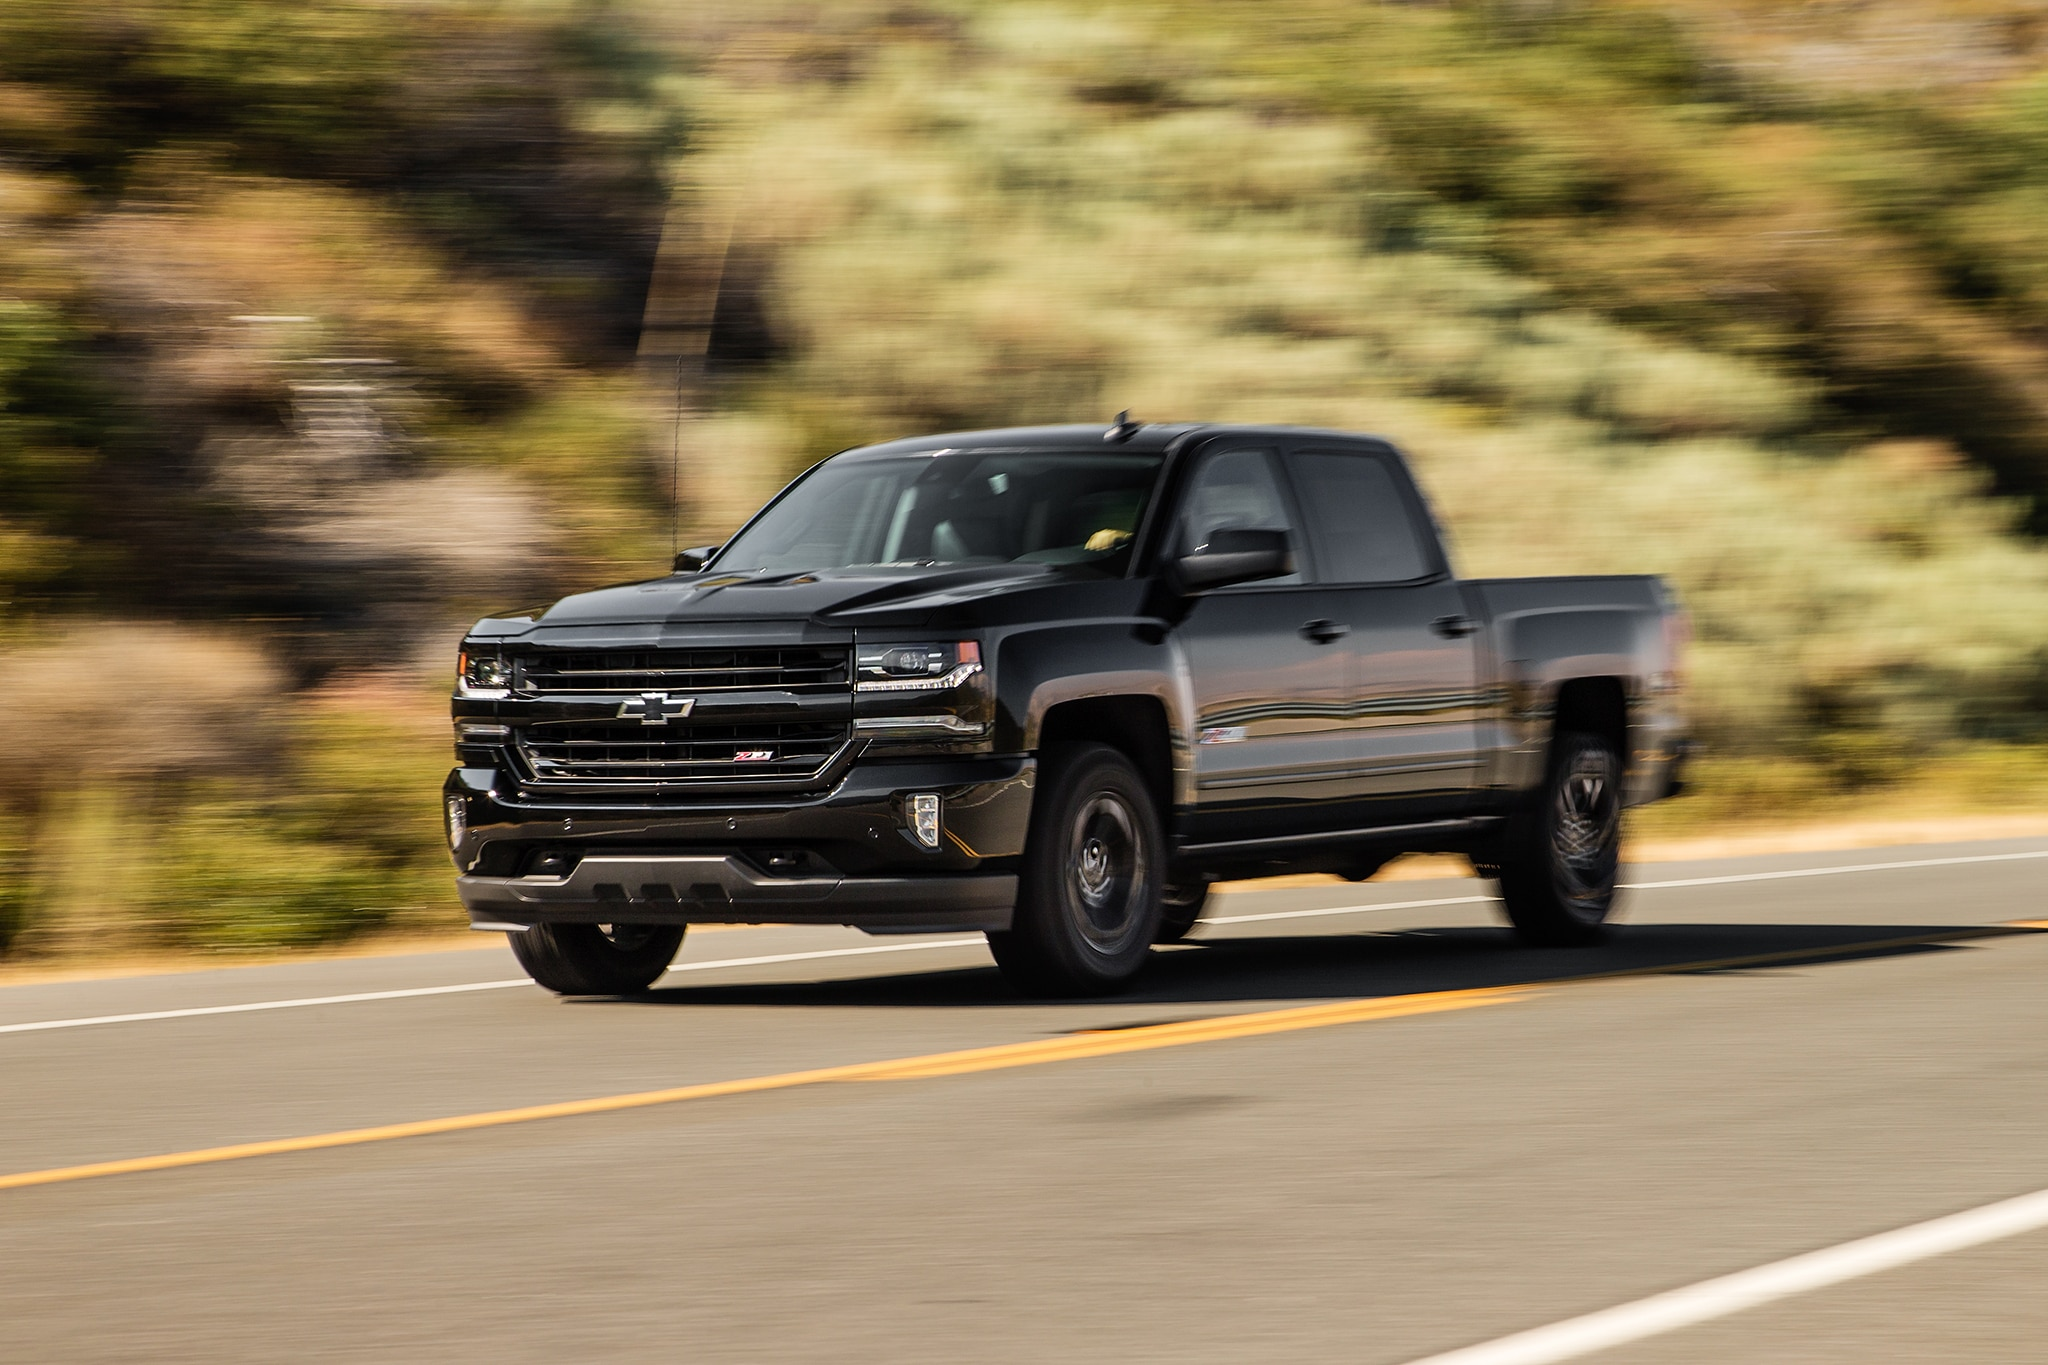 GM Trucks to Feature Carbon Fiber Beds Report